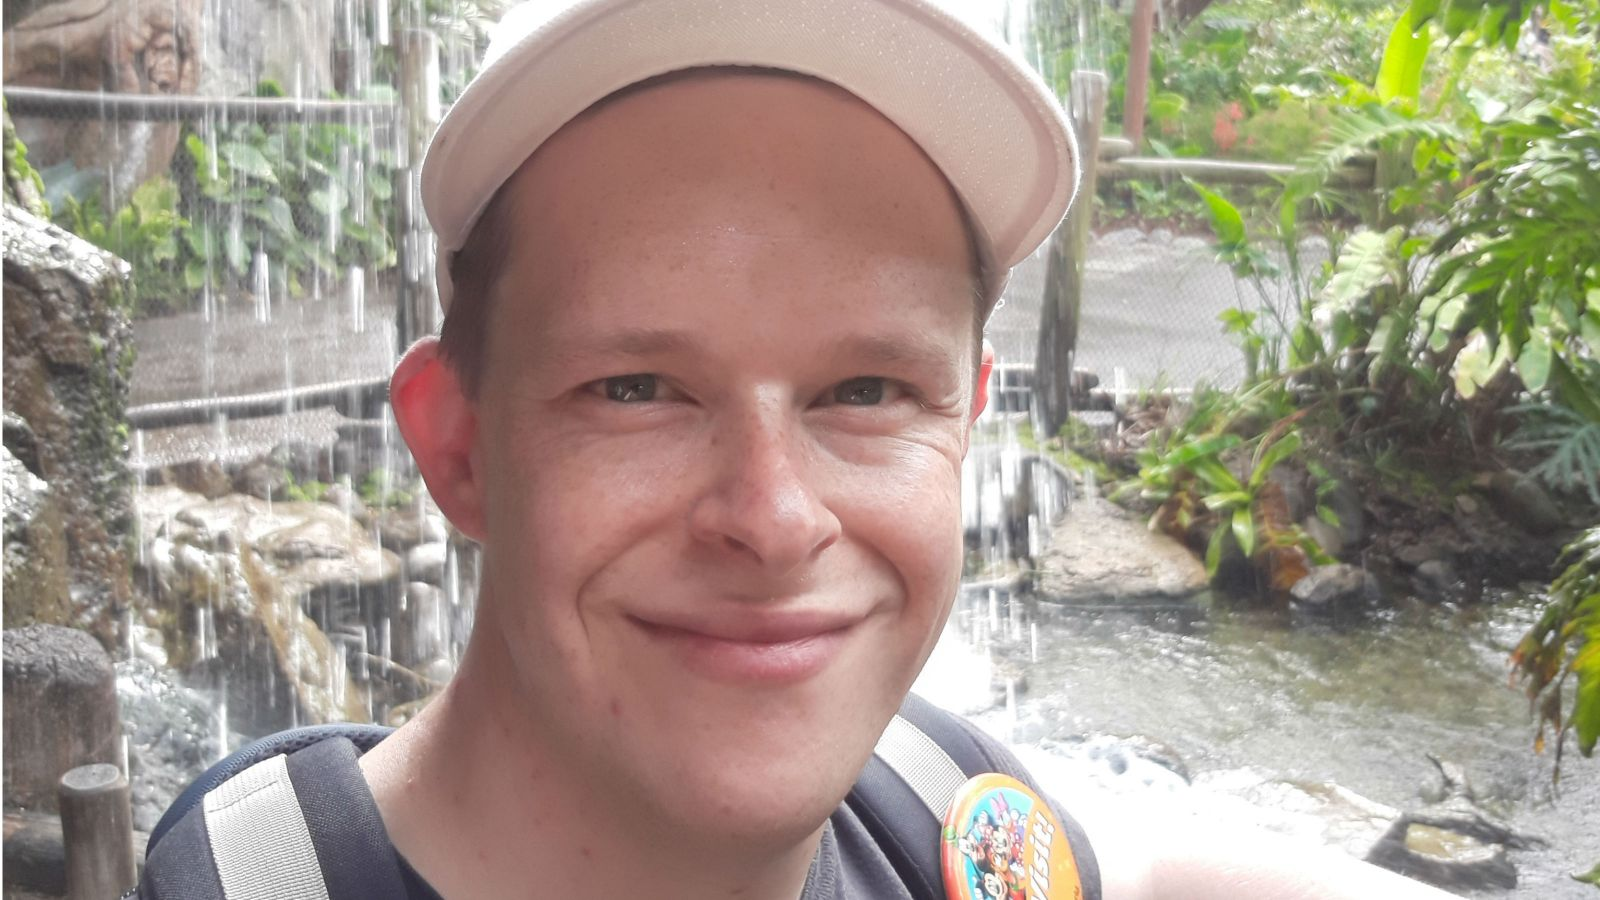 A close up of Lindsay, wearing a white cap, looking at the camera with a waterfall and plants behind him.